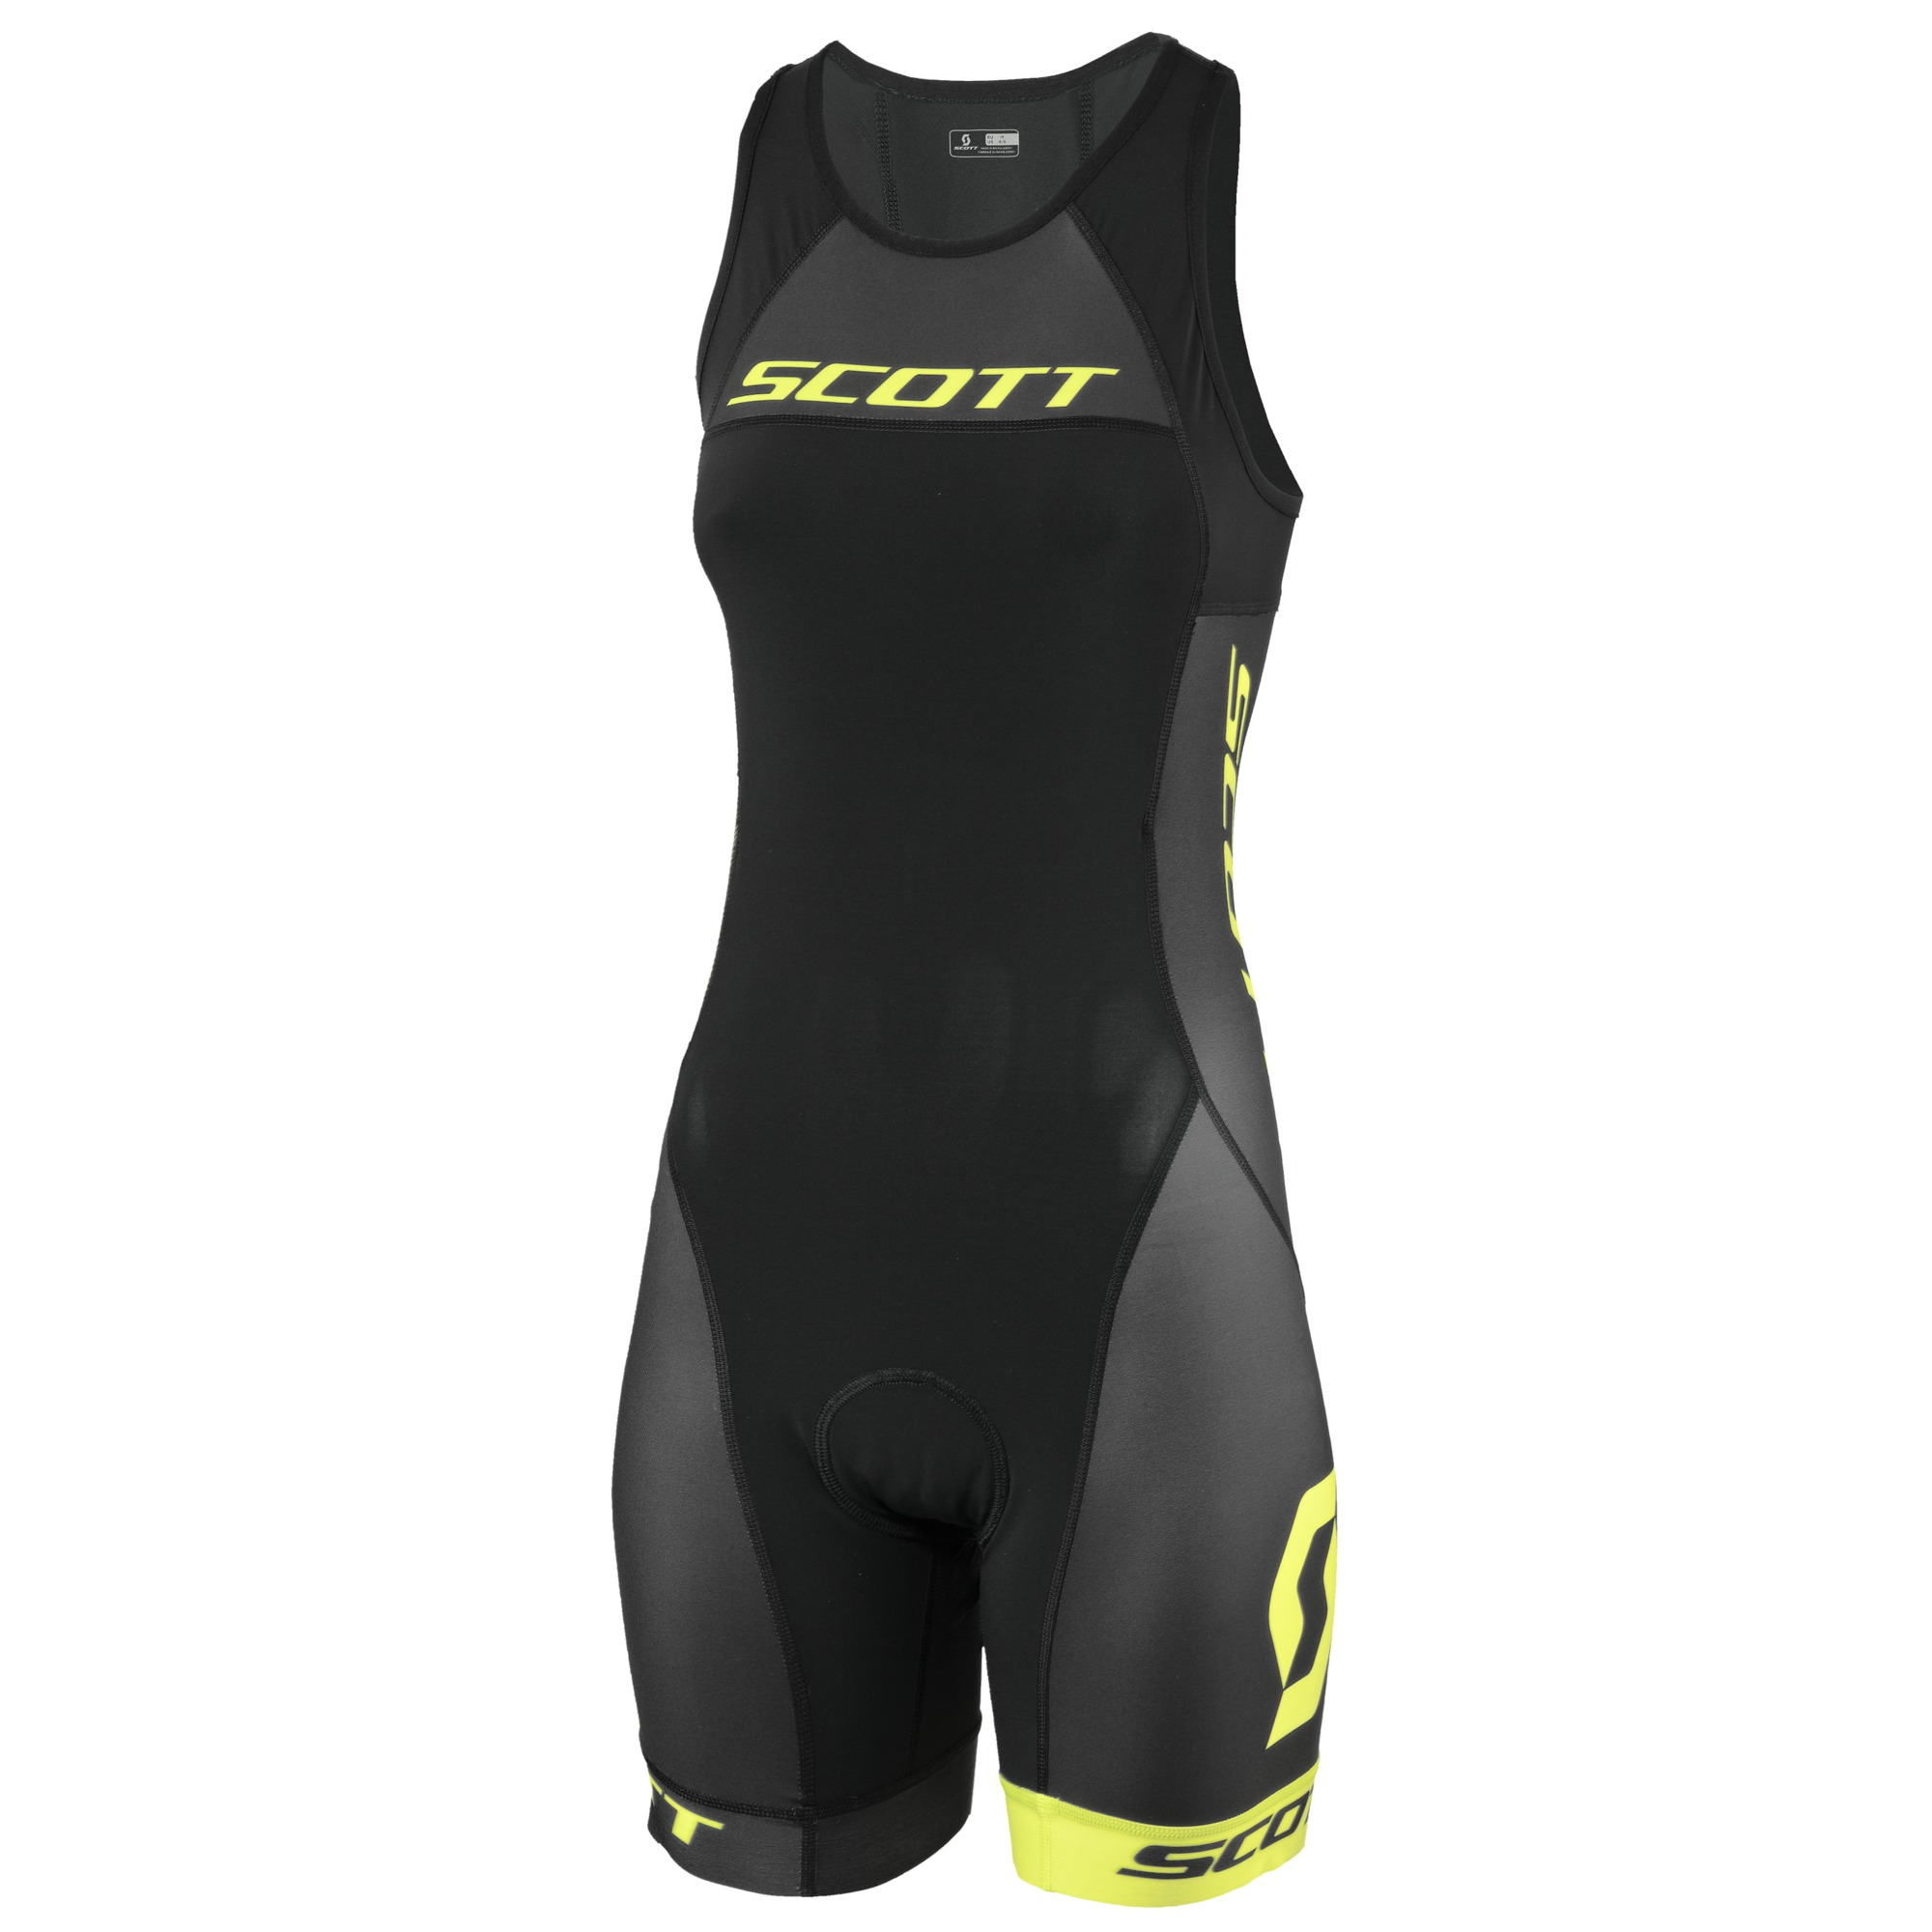 SCOTT Plasma w/pad Women's Suit